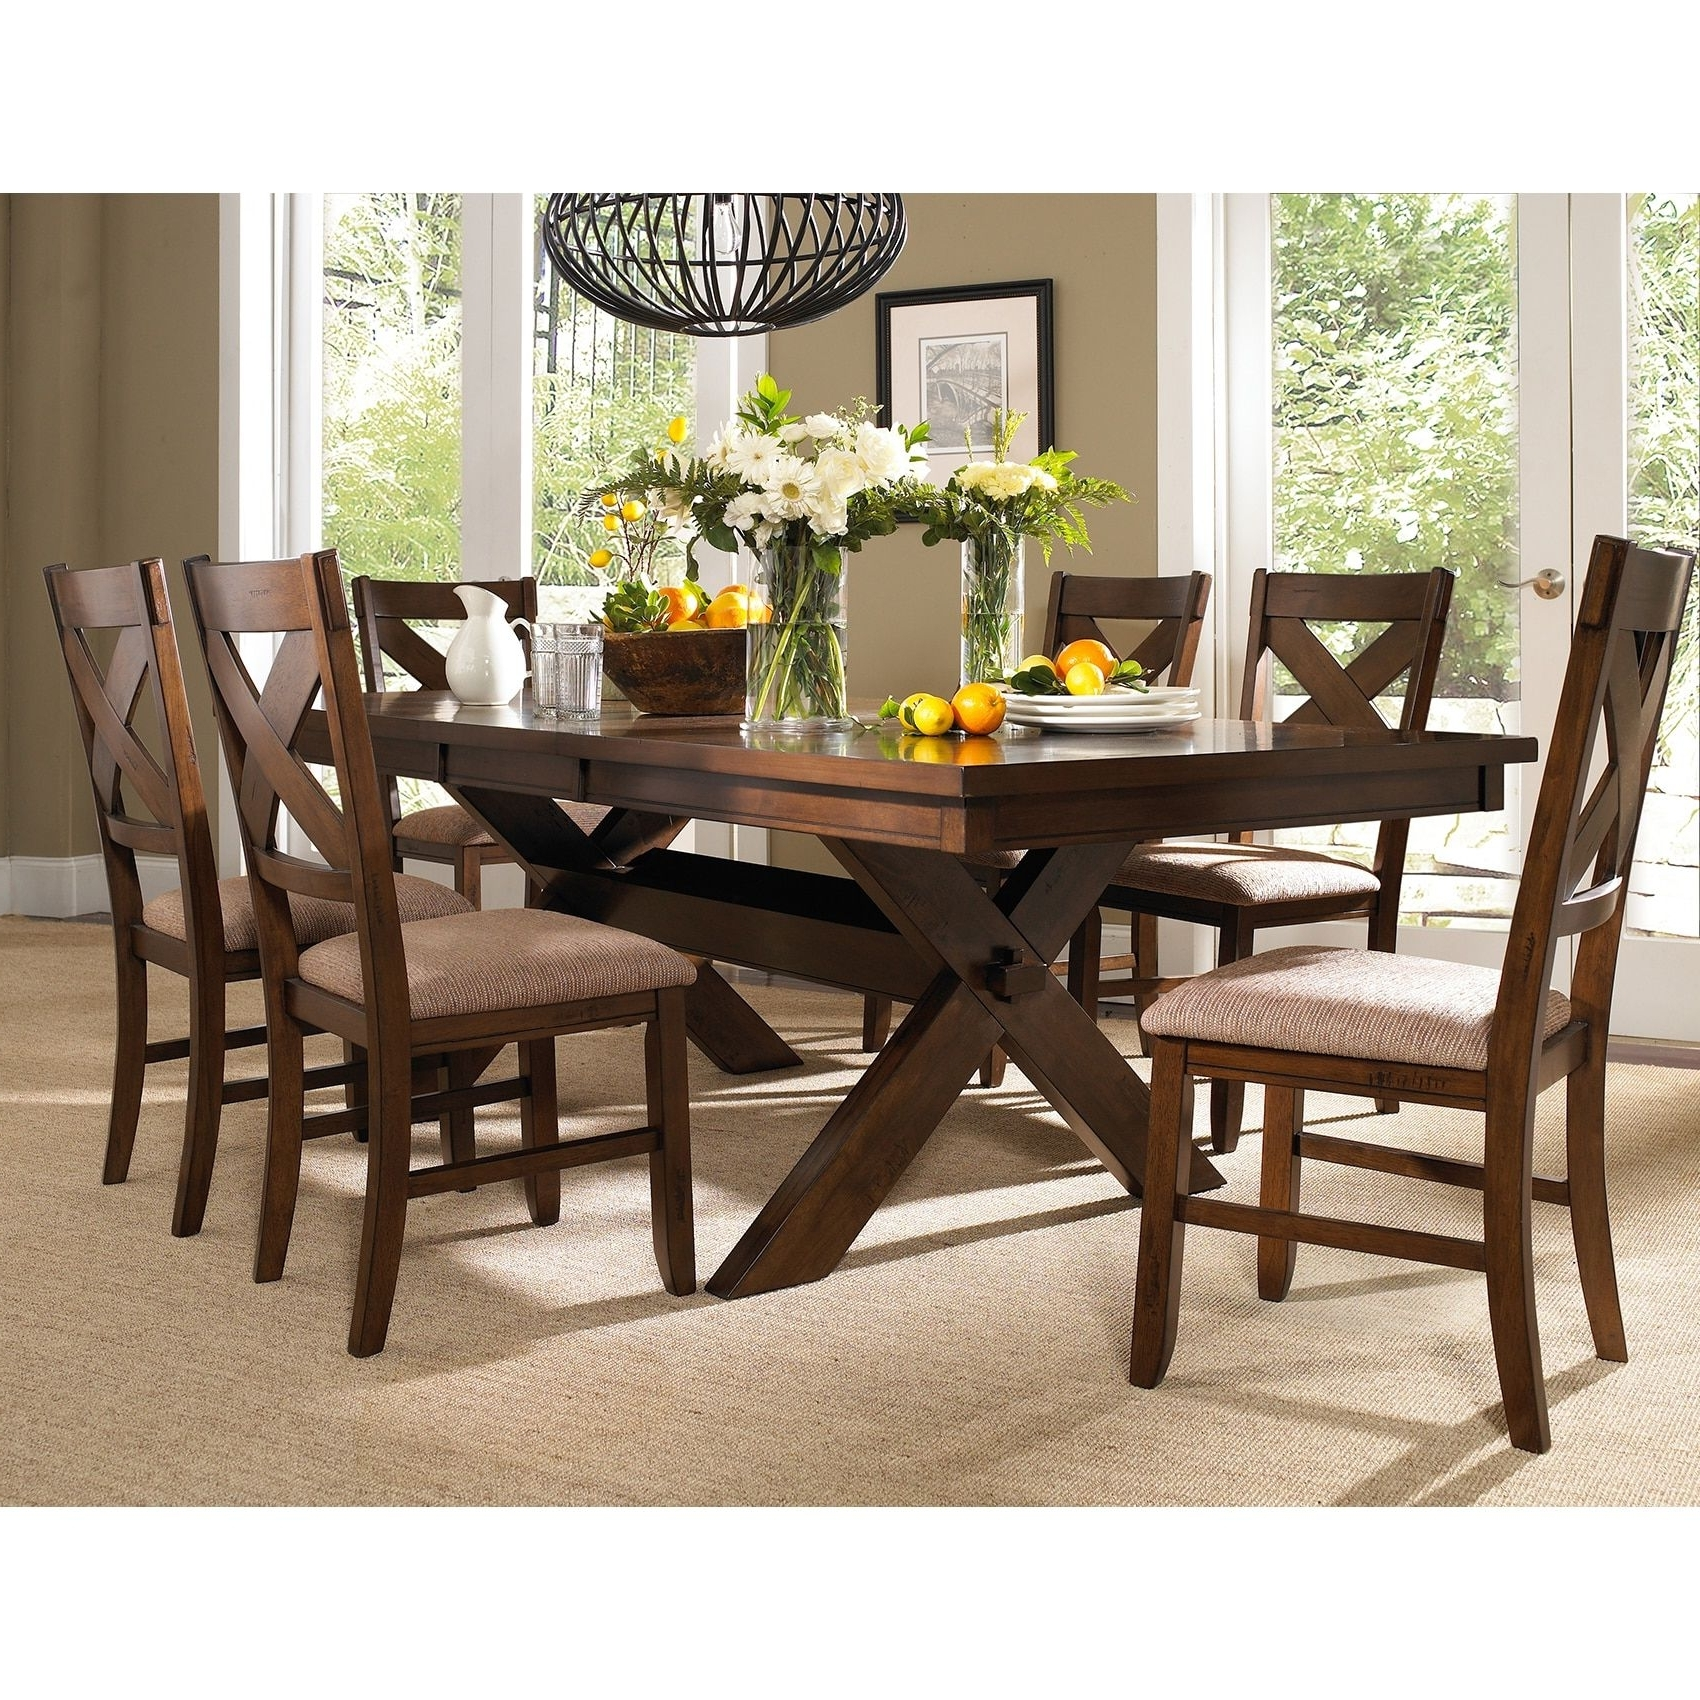 7 Piece Solid Wood Dining Set With Table And 6 Chairs (Dark Hazelnut Throughout Most Recent Dark Wood Dining Tables 6 Chairs (View 13 of 25)